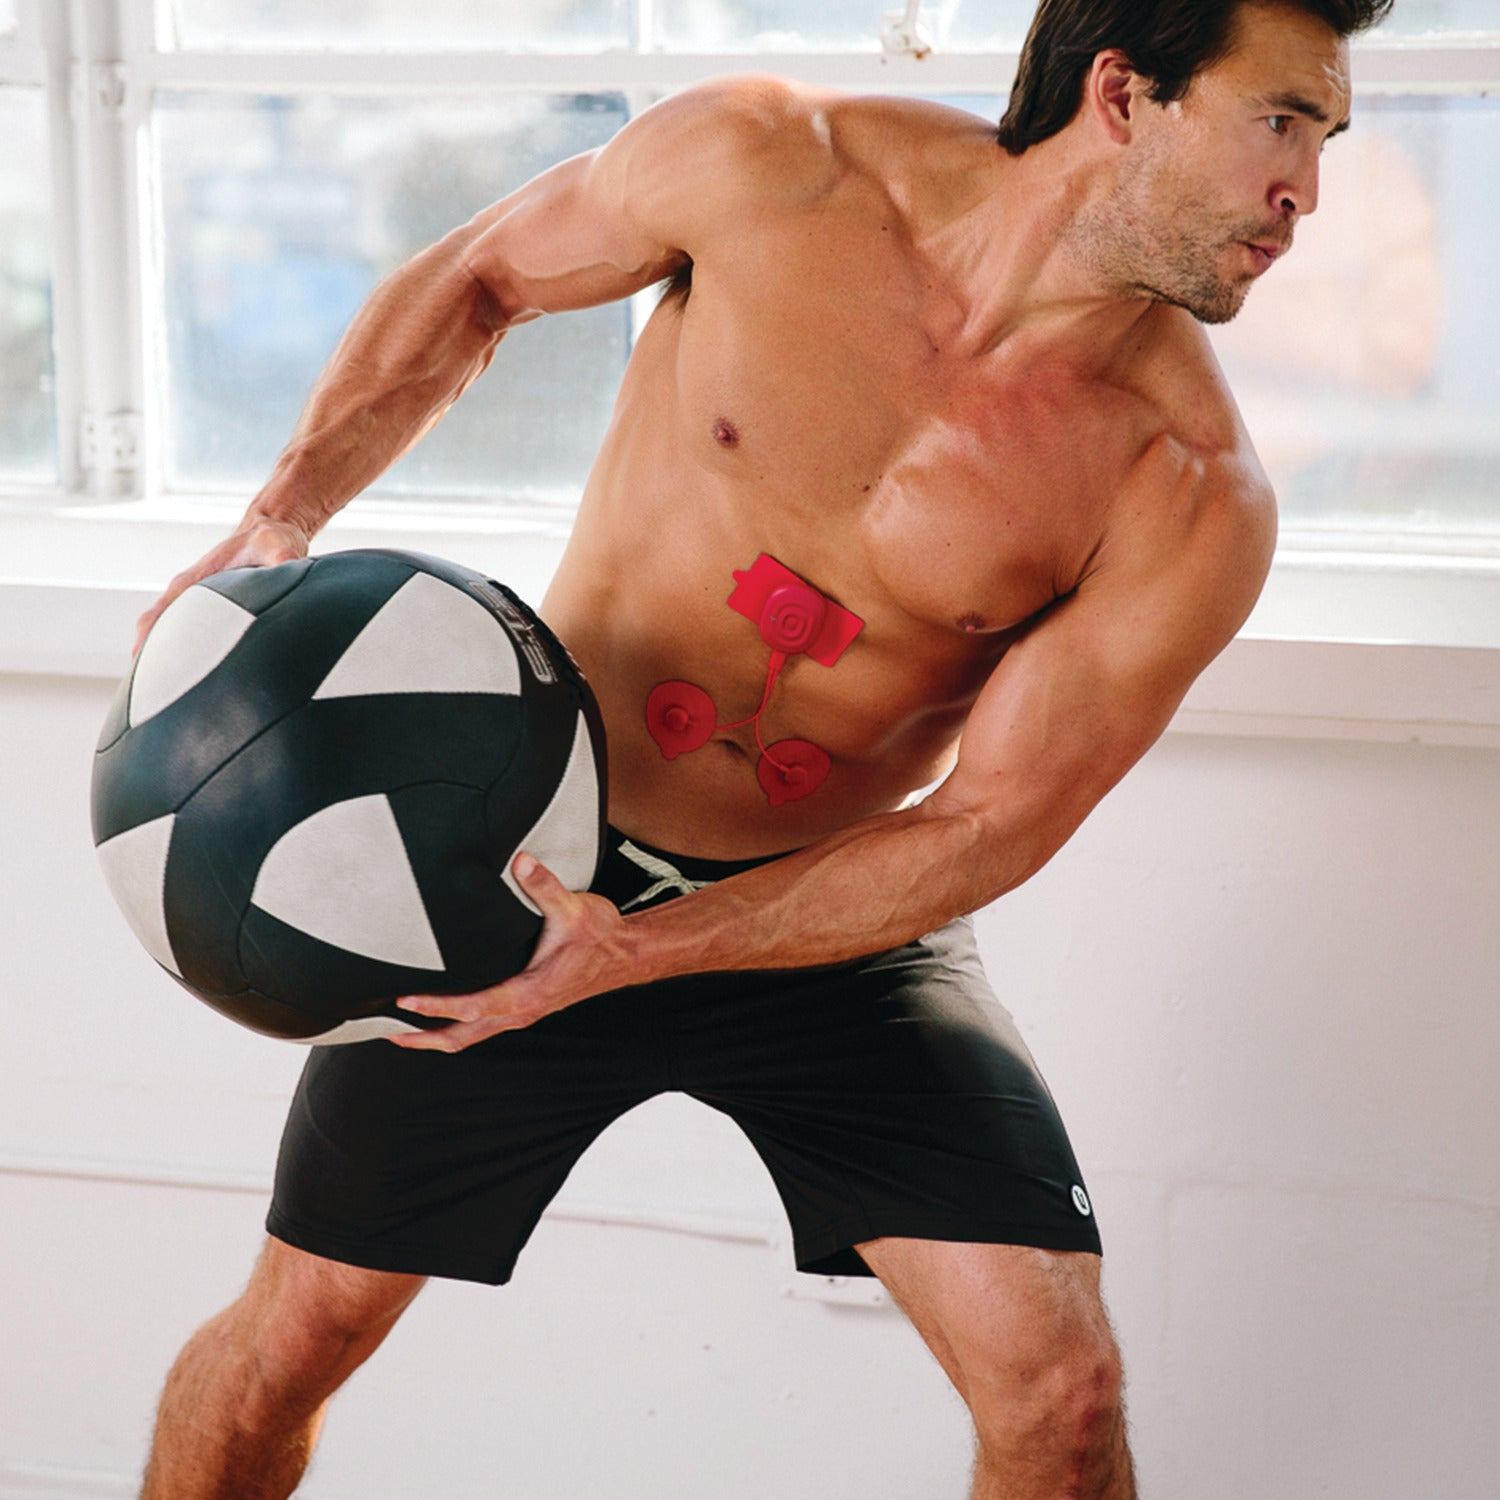 A model with an exercise hall and the PowerDot device on his abs.